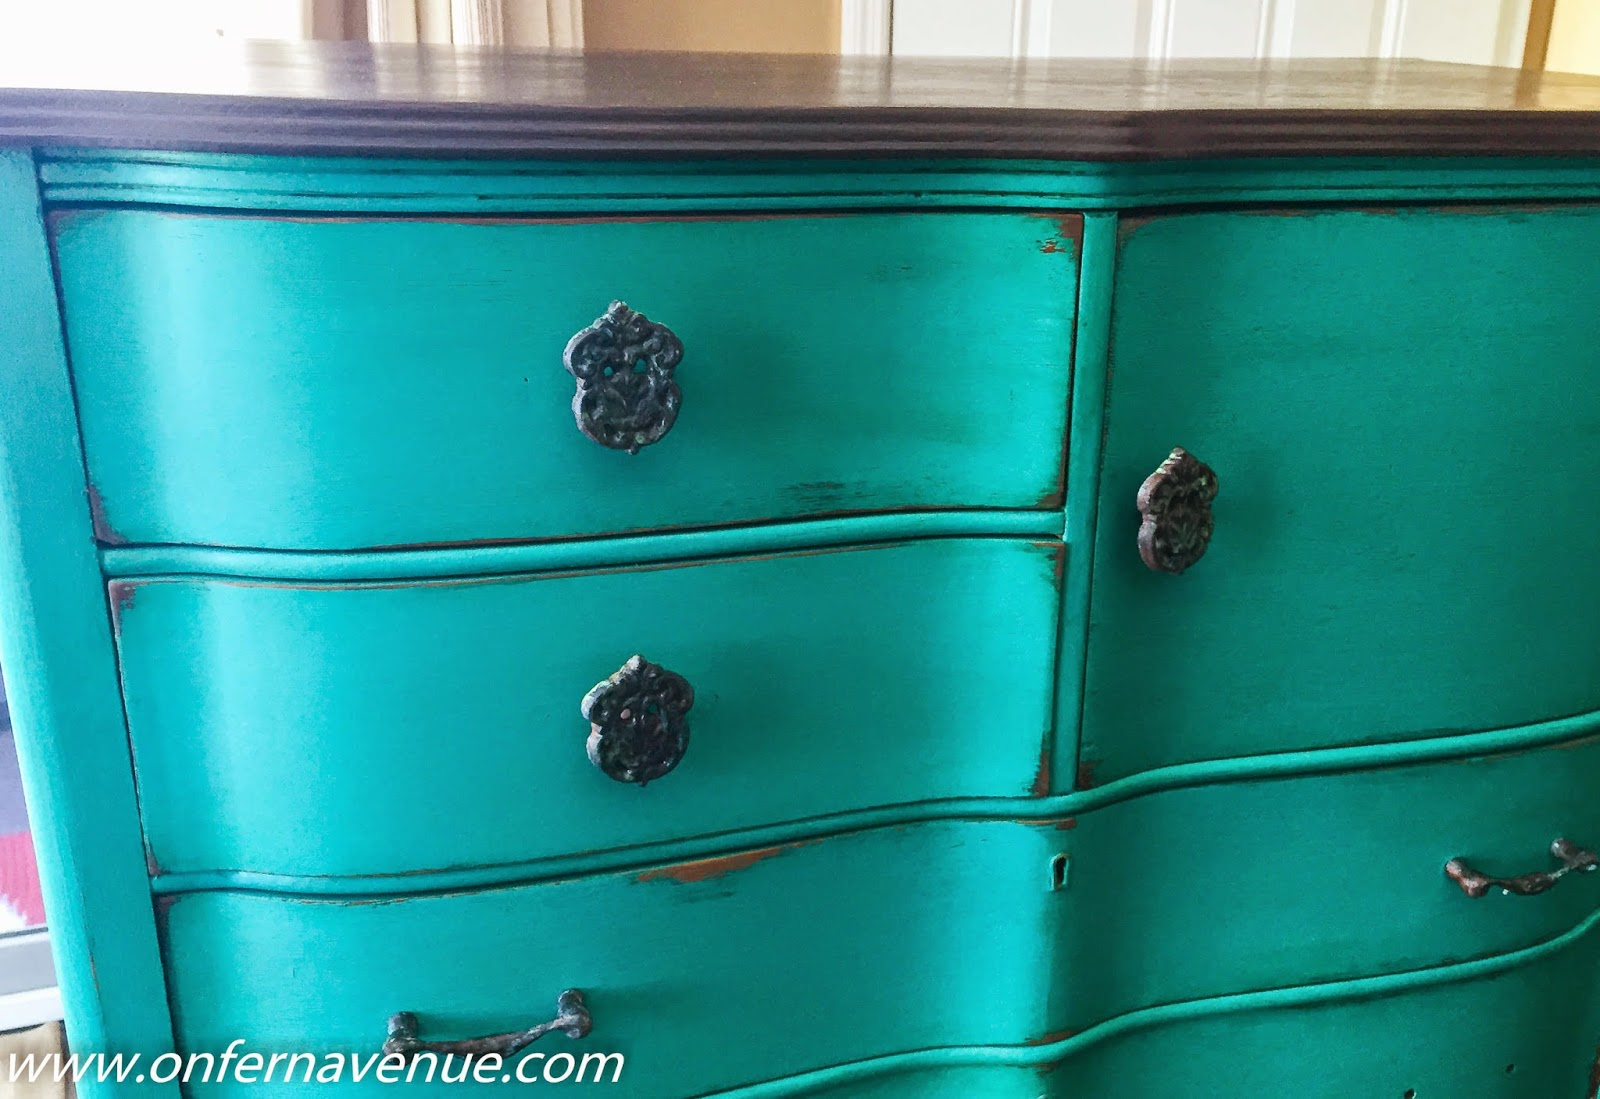 On Fern Avenue Green Patina Dresser